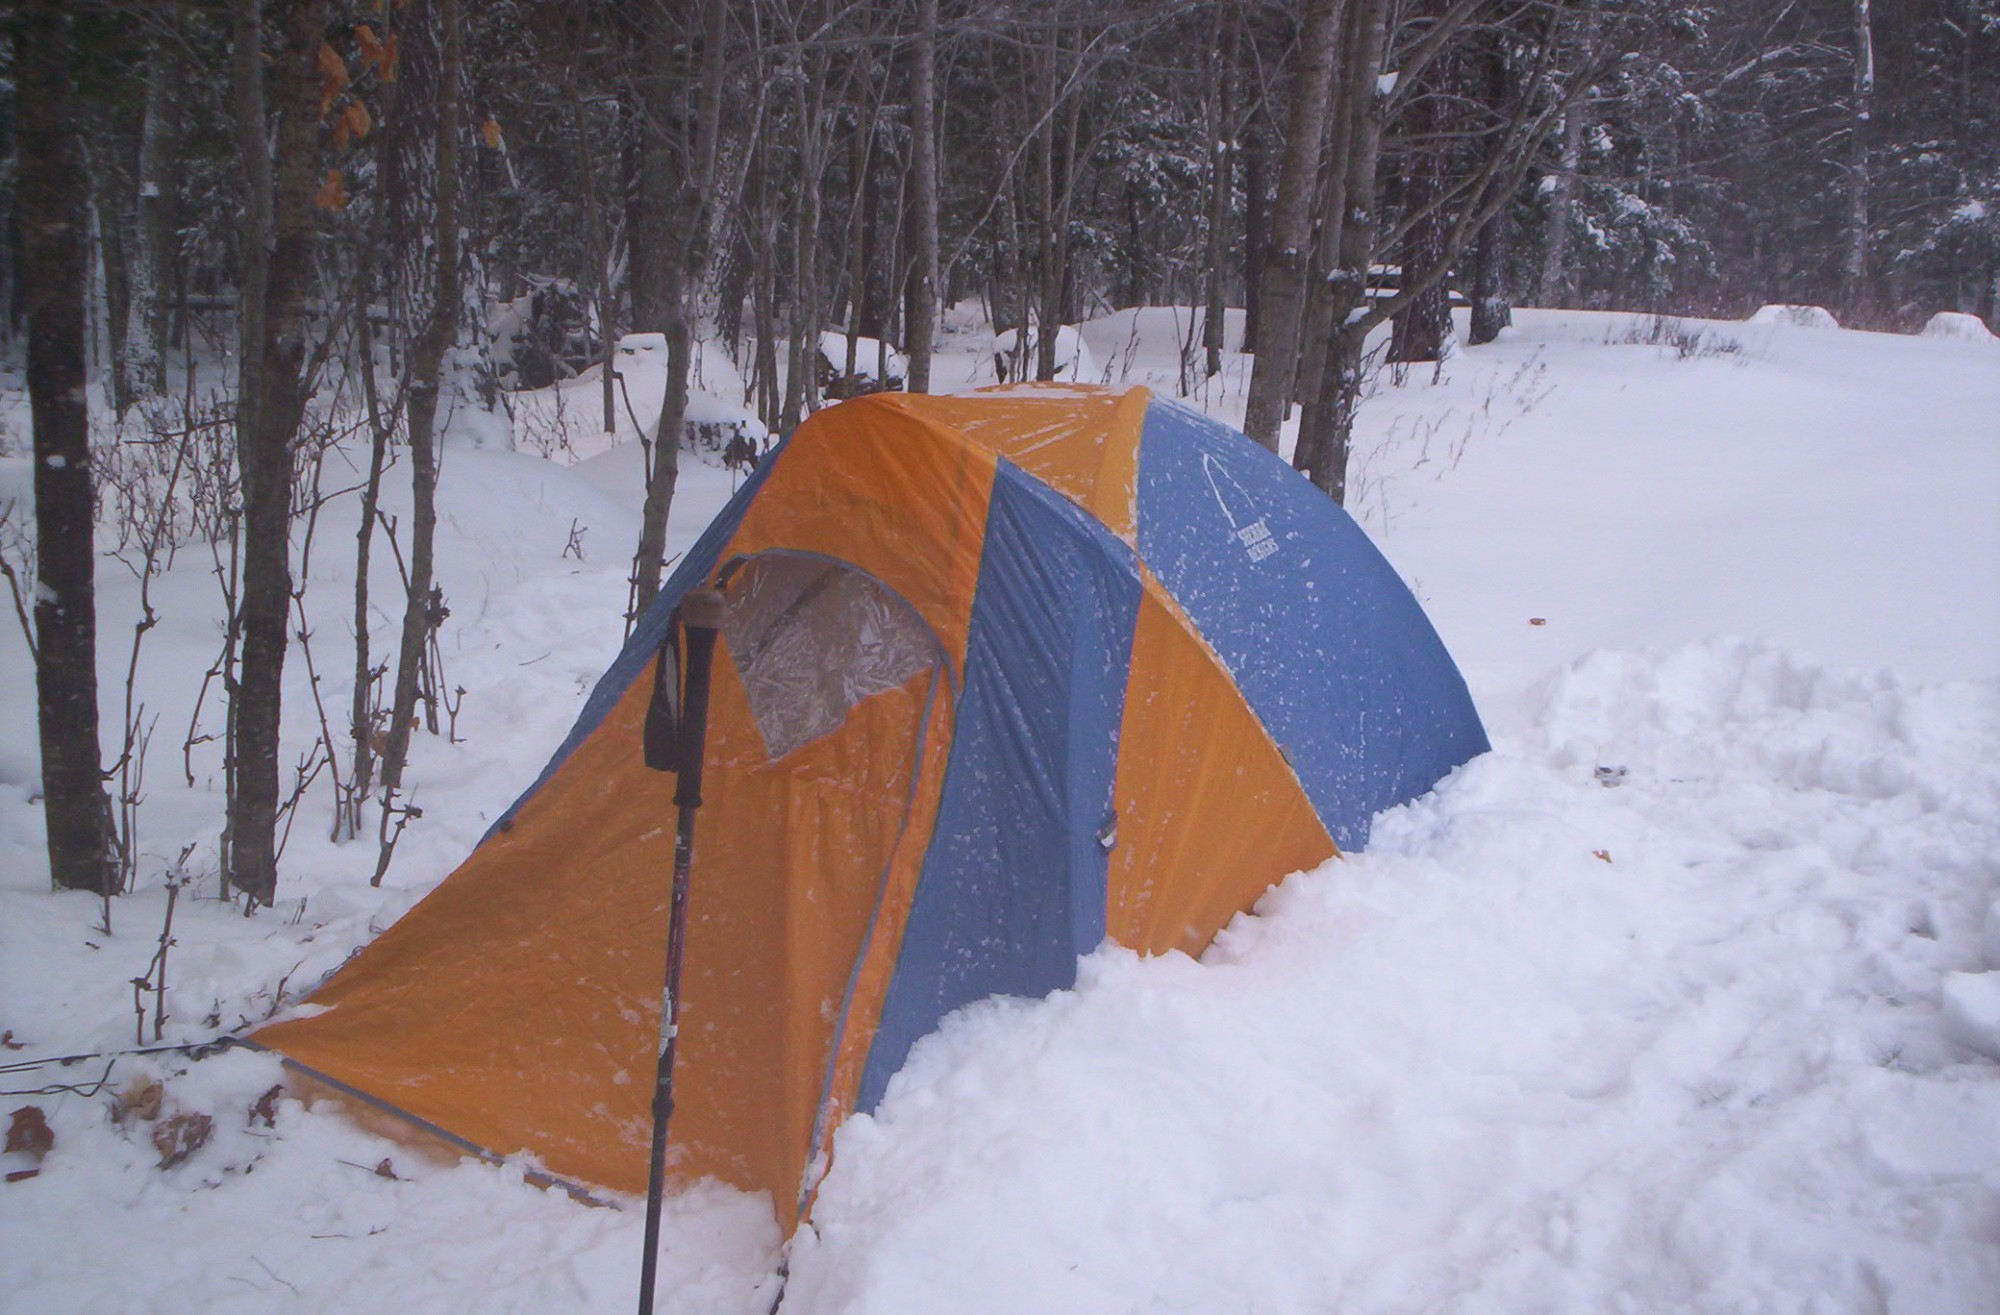 Winter Camping Tents : The snowshoe and tent experience magazine